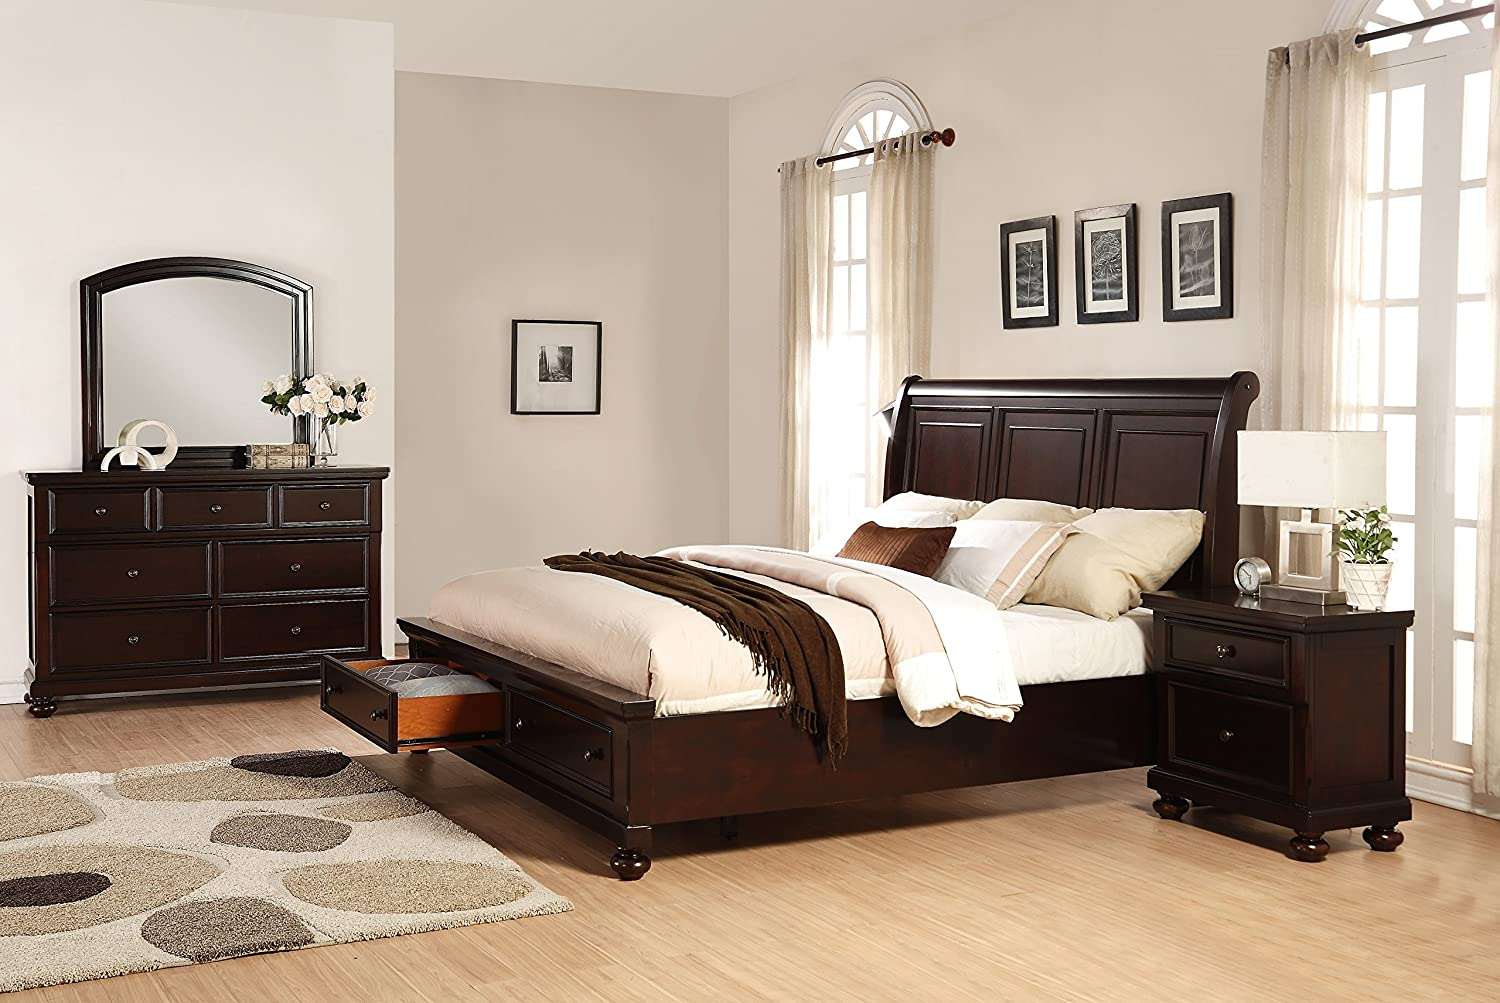 Brishland Storage Bed Room Set, Queen, Rustic Cherry